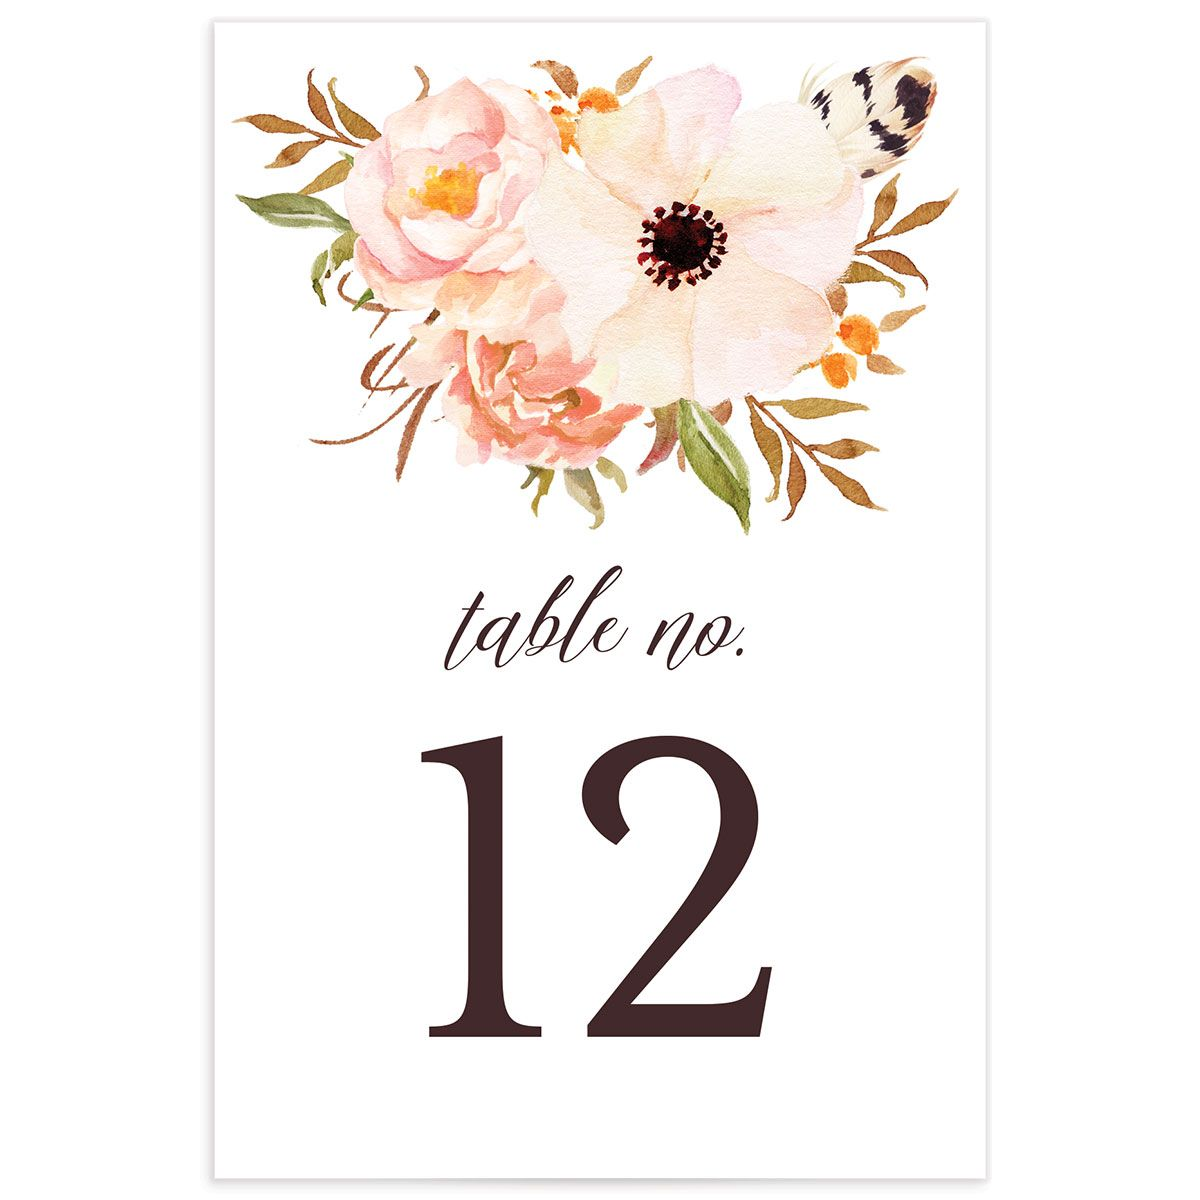 Bohemian Floral Table Numbers back peach